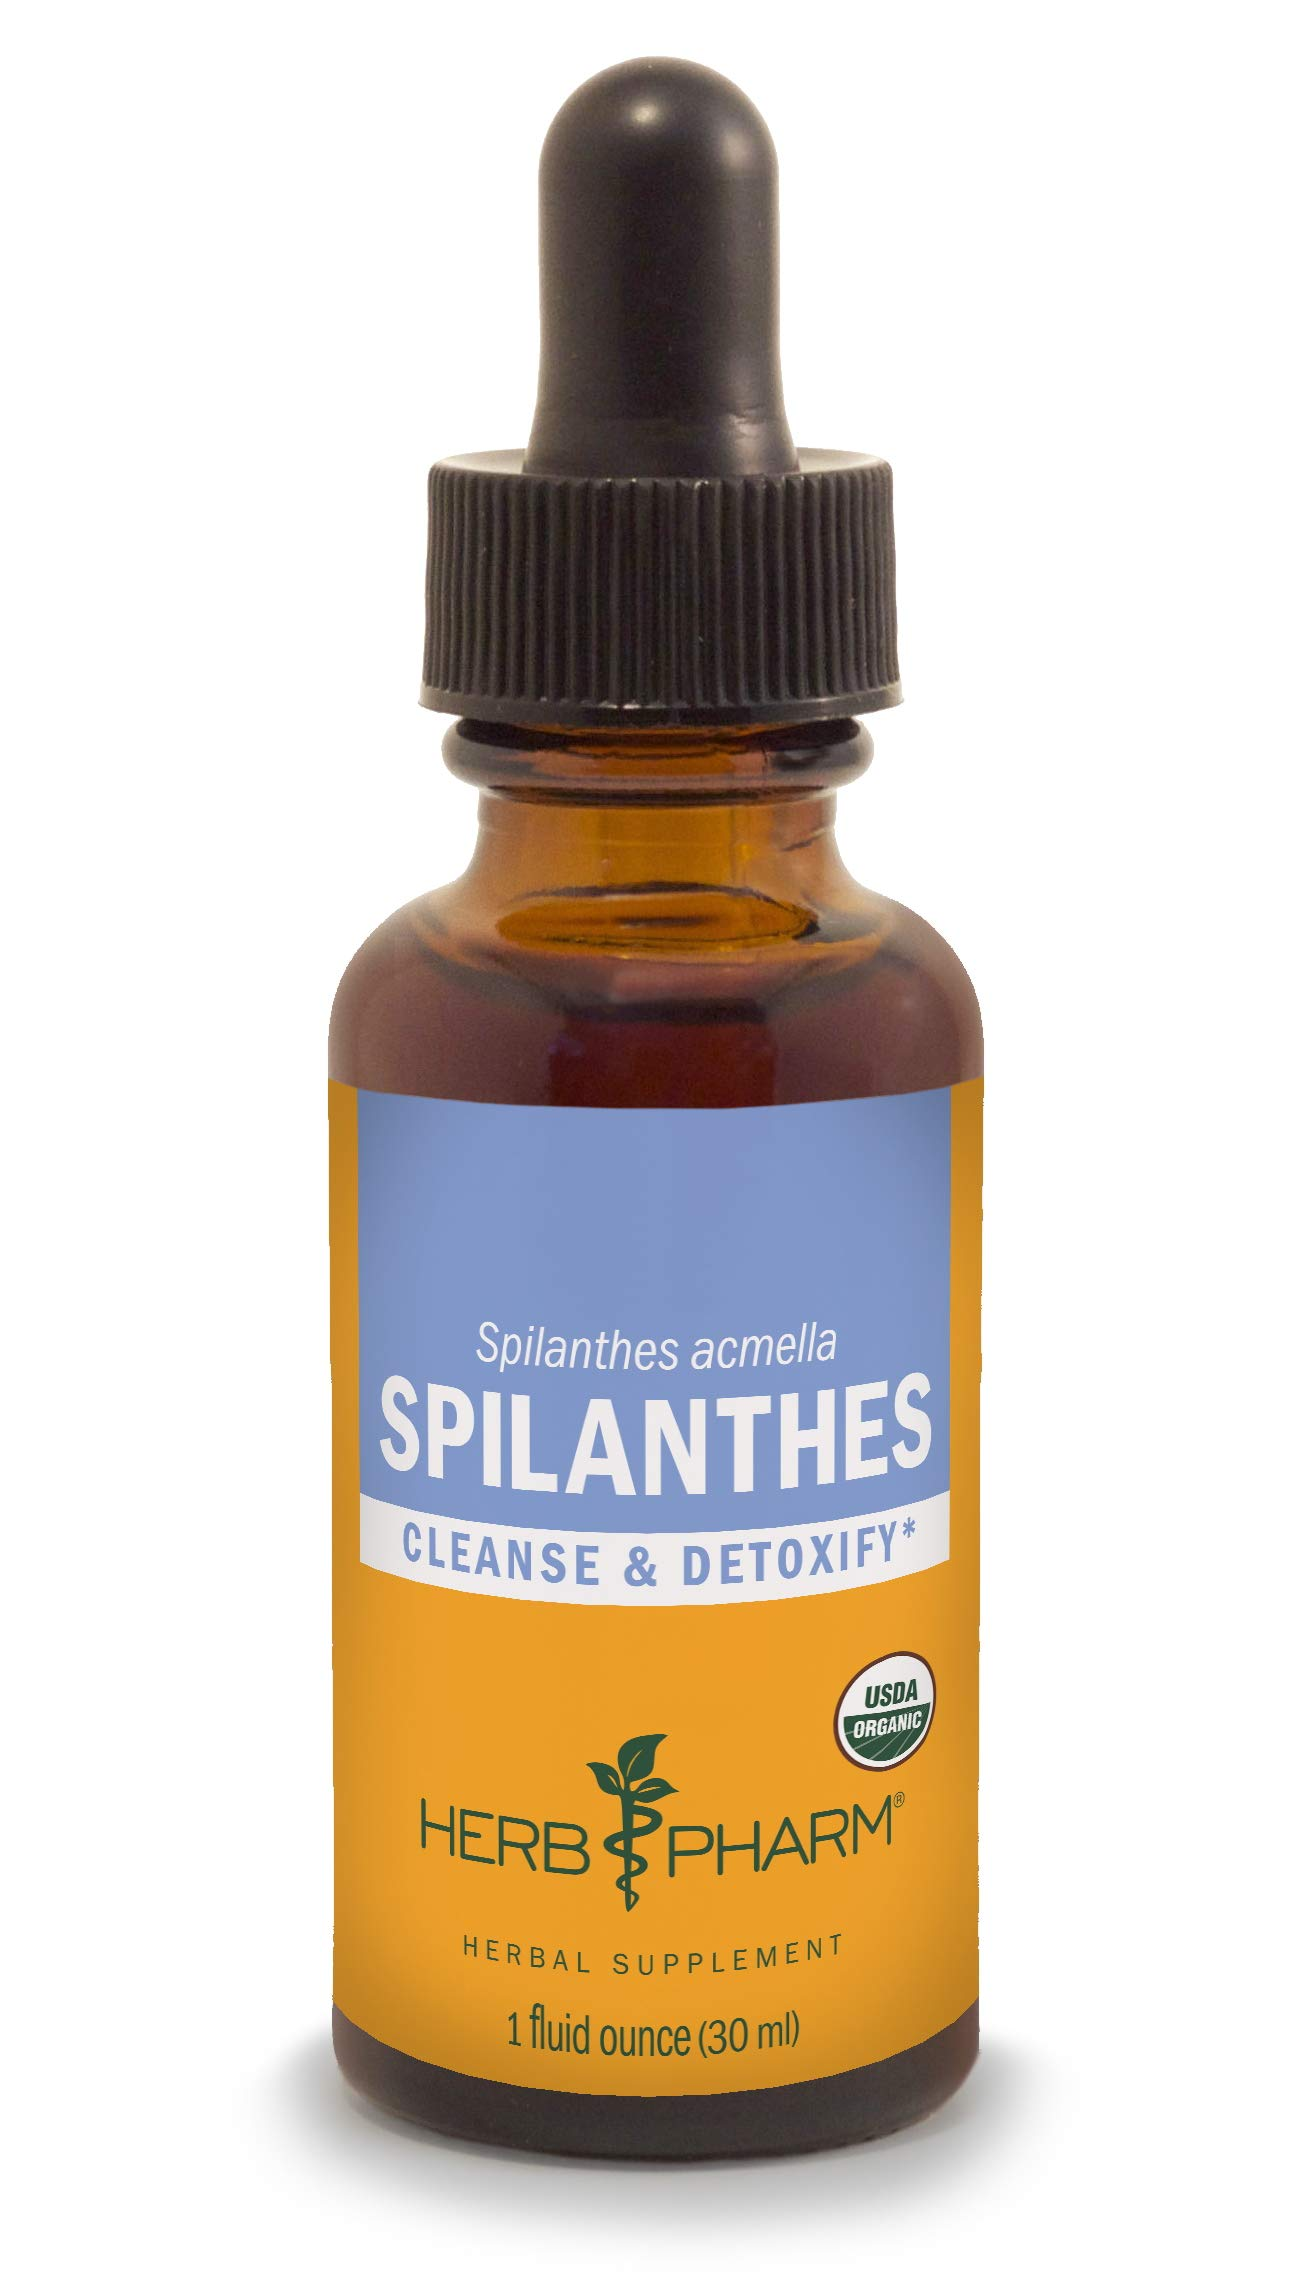 Herb Pharm Certified Organic Spilanthes Extract for Cleansing and Detoxification